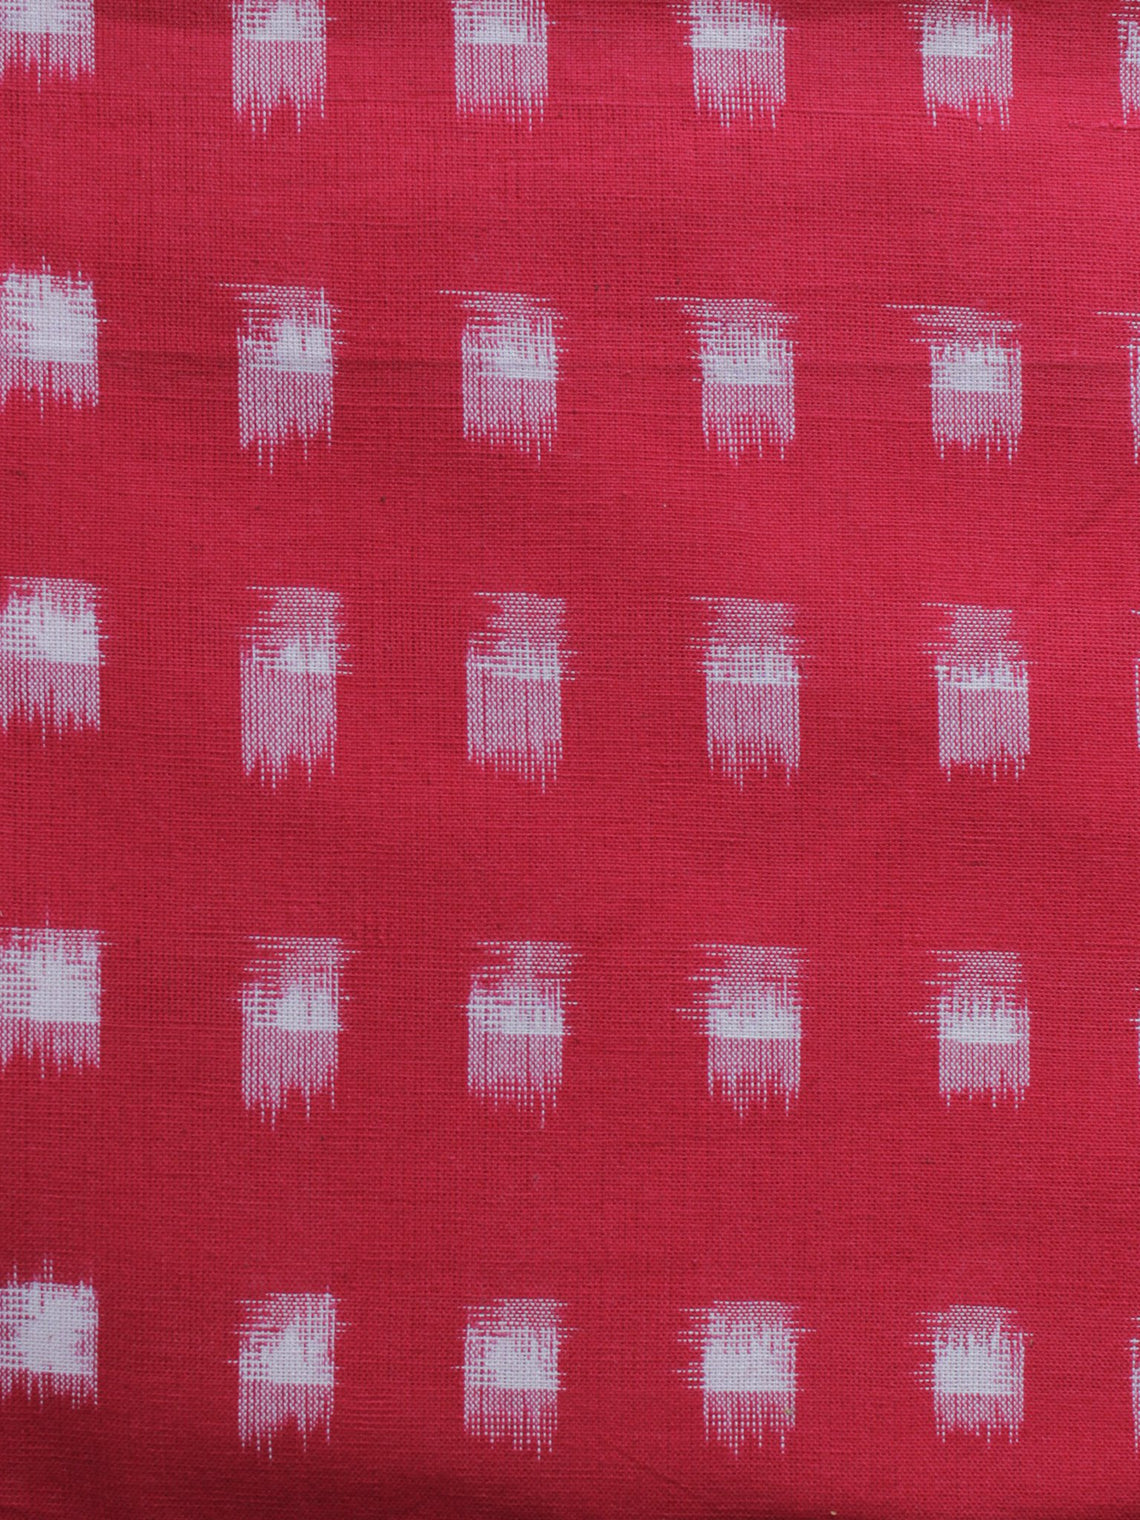 Red White Pochampally Hand Woven Double Ikat Fabric Per Meter - F002F1018